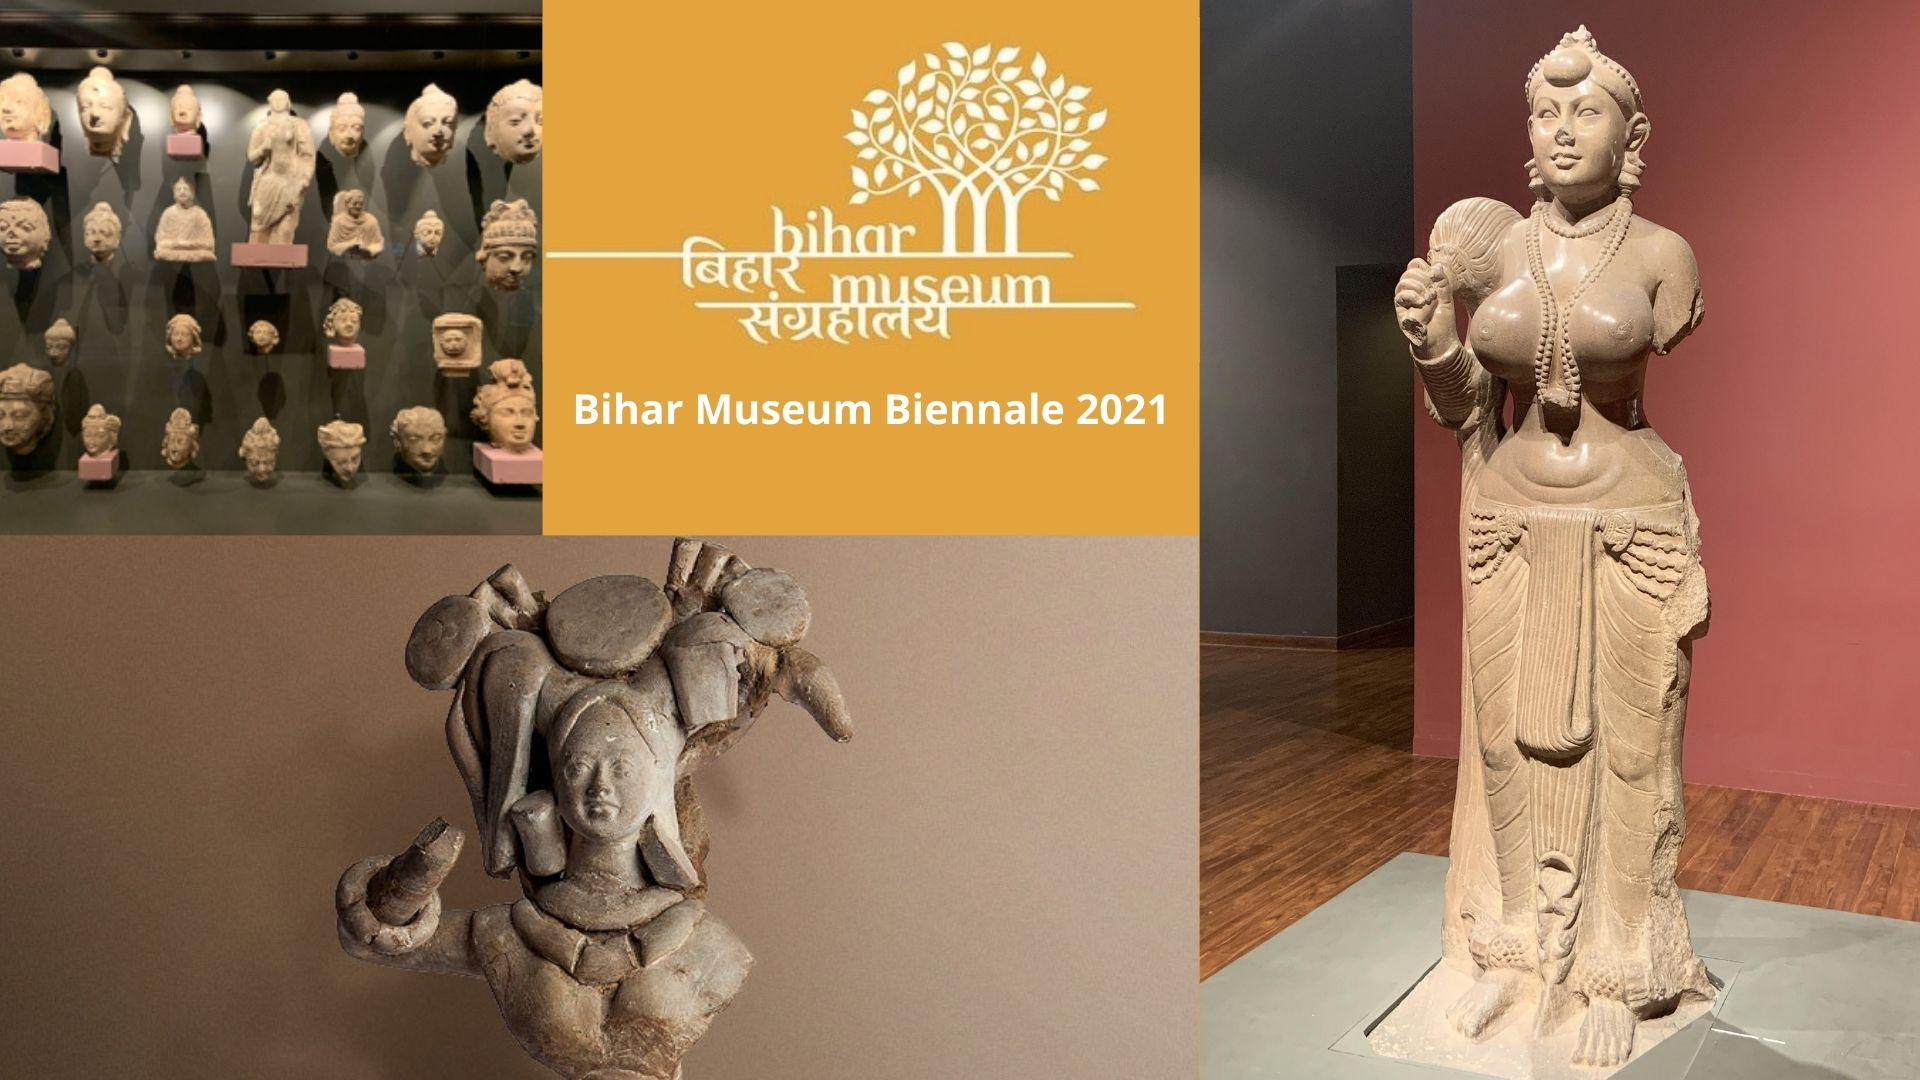 The World's first Museum Biennale is being hosted by Bihar Museum